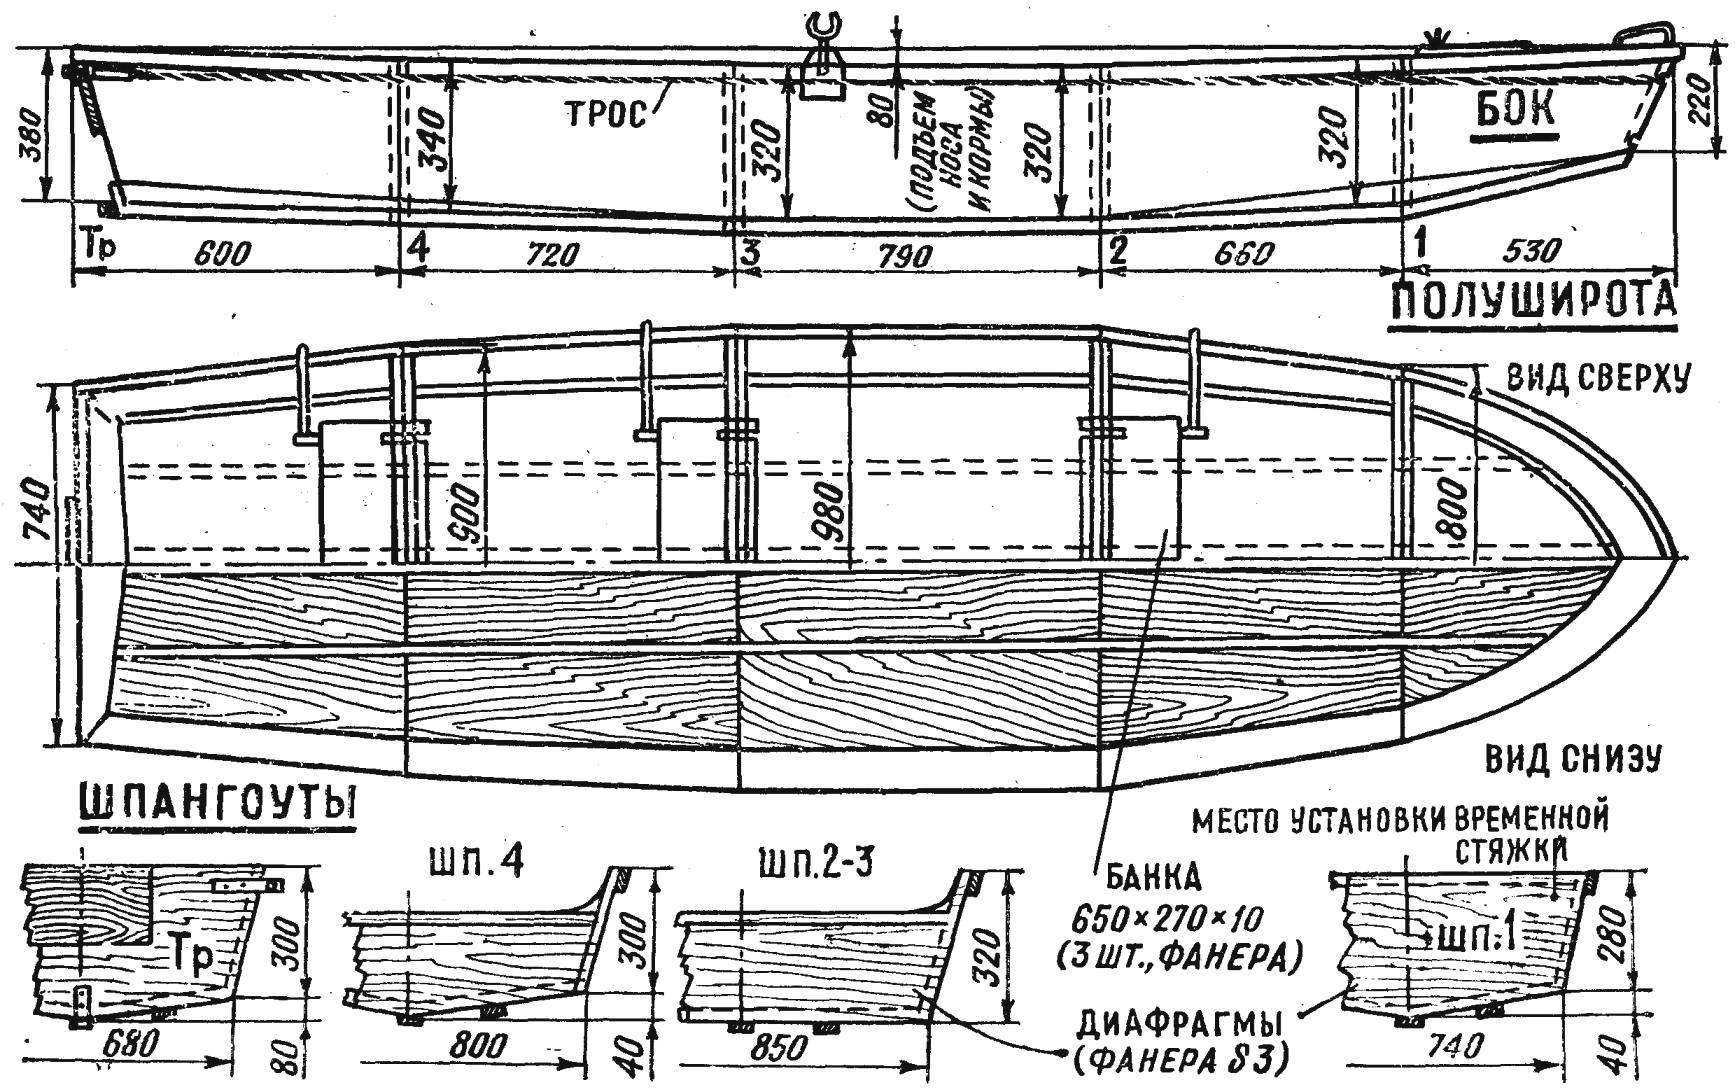 Fig. 2. The principal dimensions of the boat